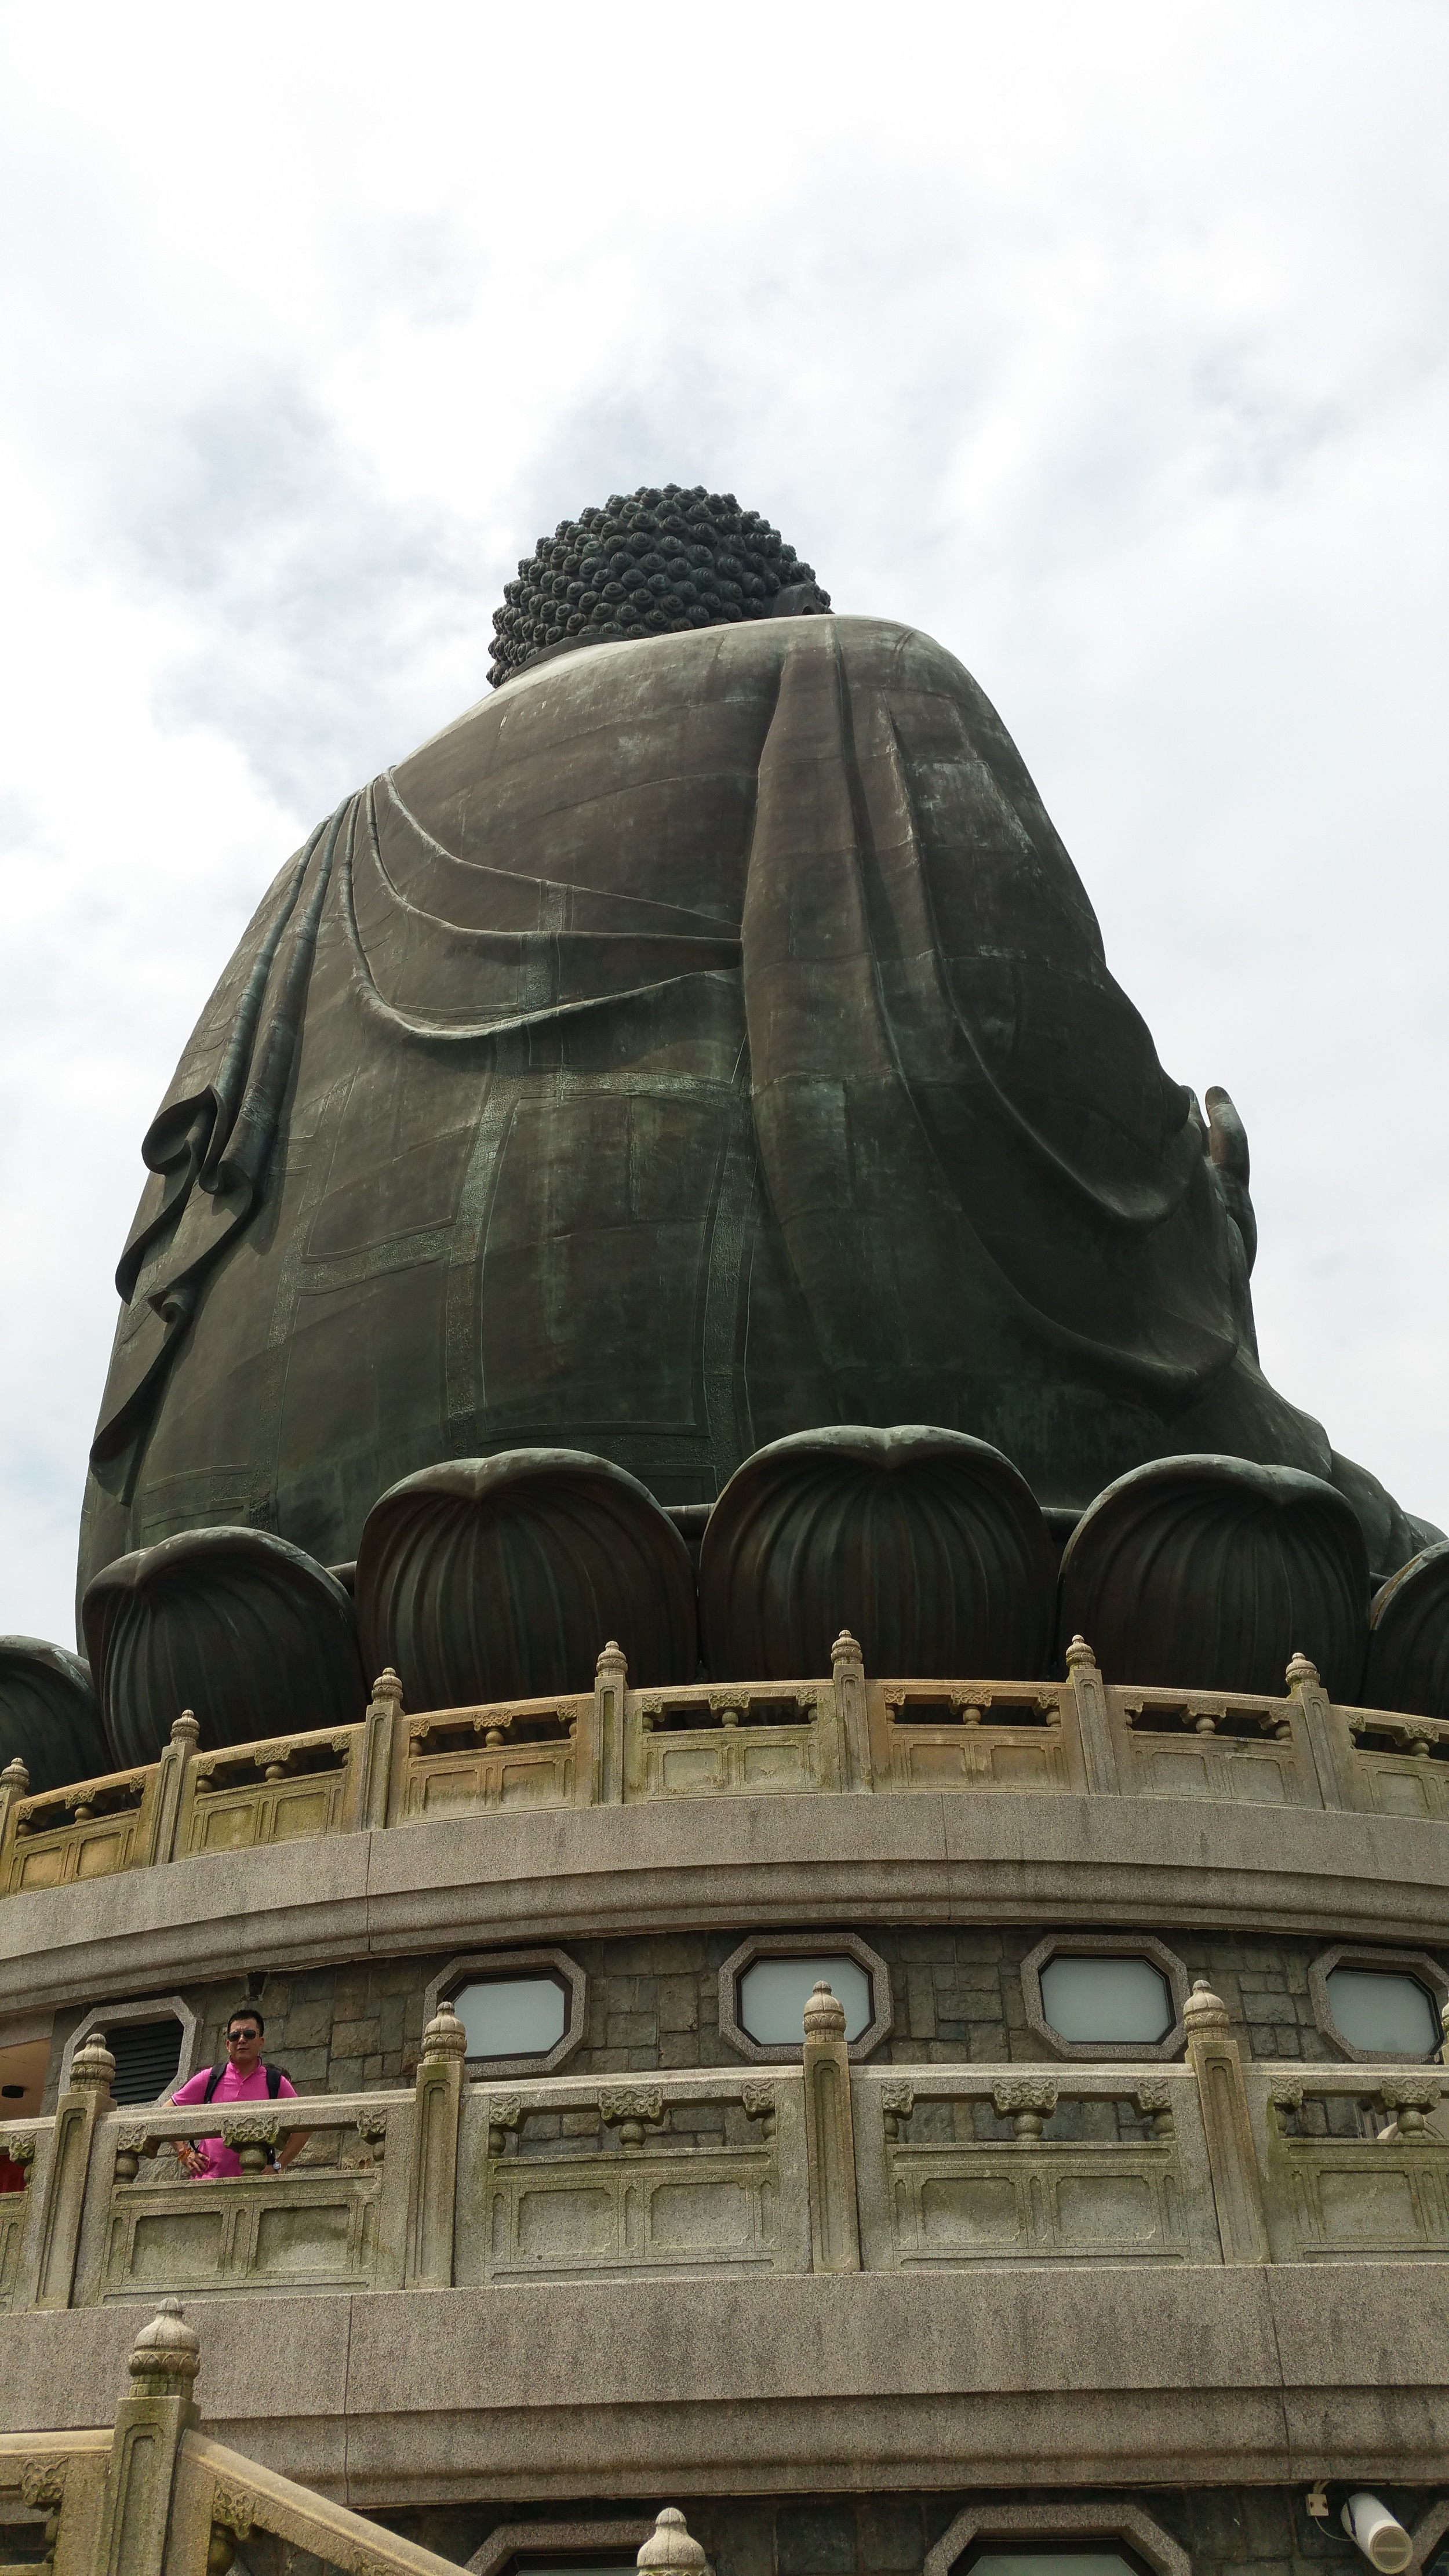 The lighting was, unfortunately, much better on Buddha's back than on his front.